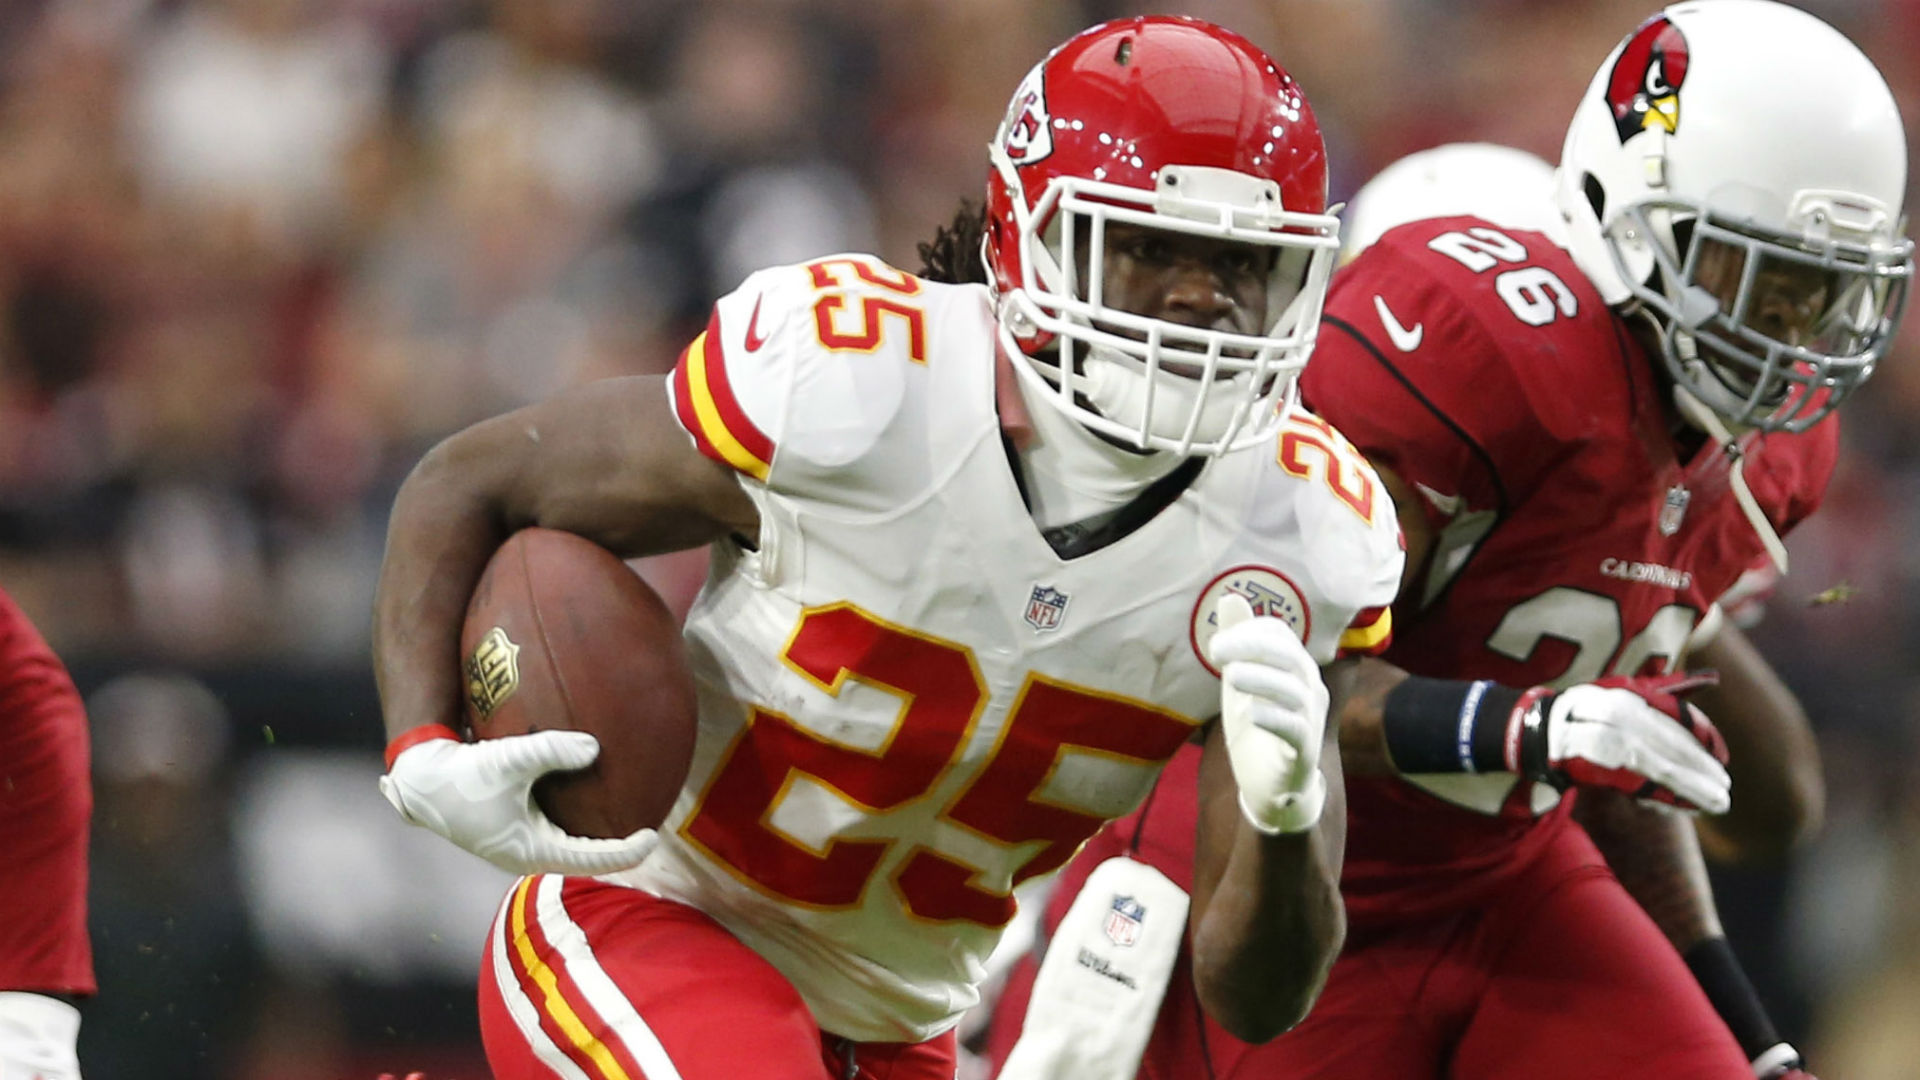 Chiefs vs. Steelers betting preview and pick – K.C. a fantastic dog this season